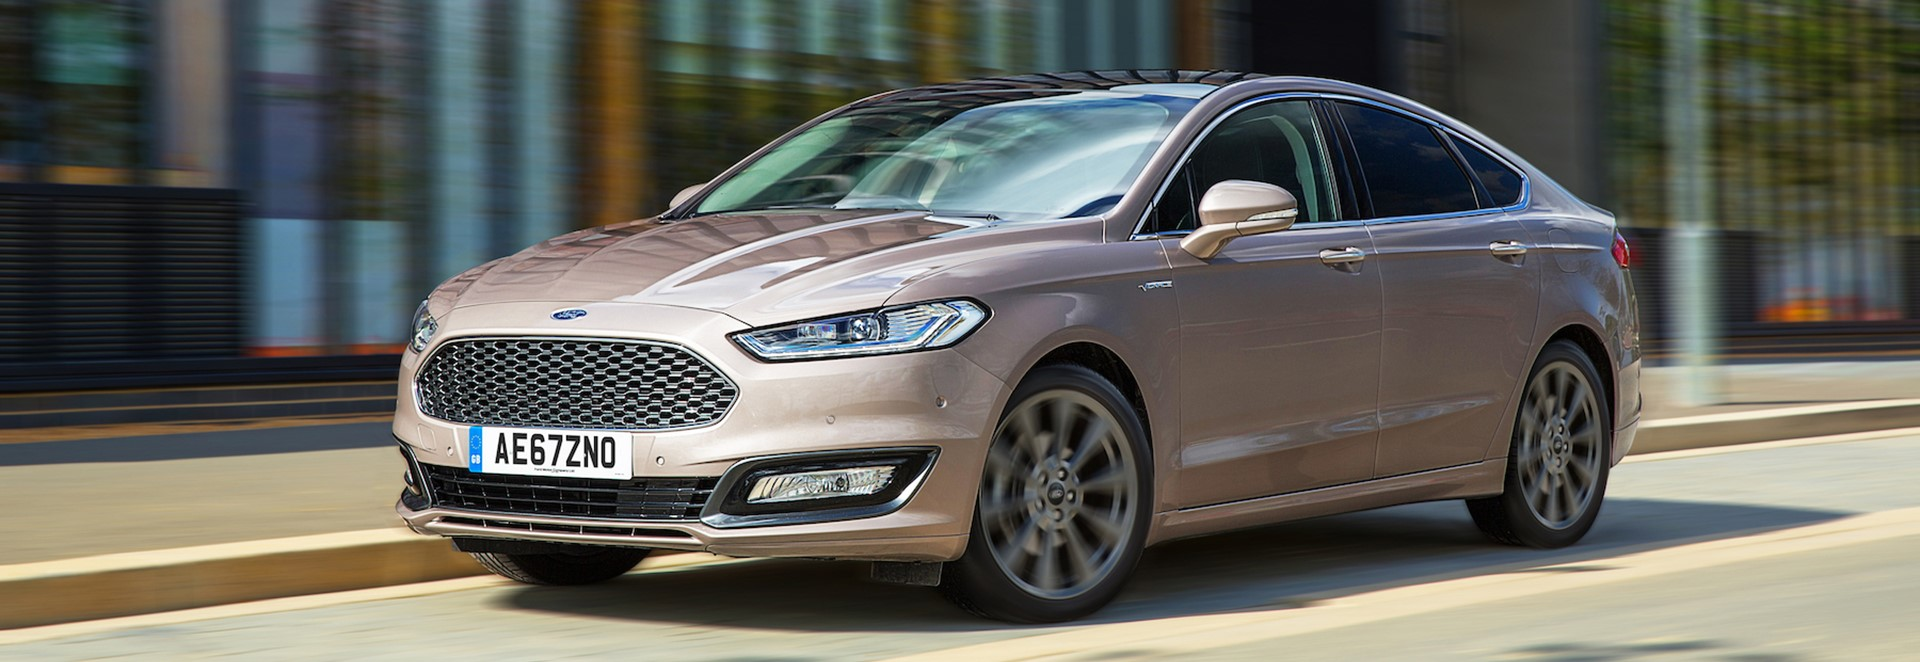 2018 ford mondeo range sees prices cut by up to 3000 car keys. Black Bedroom Furniture Sets. Home Design Ideas